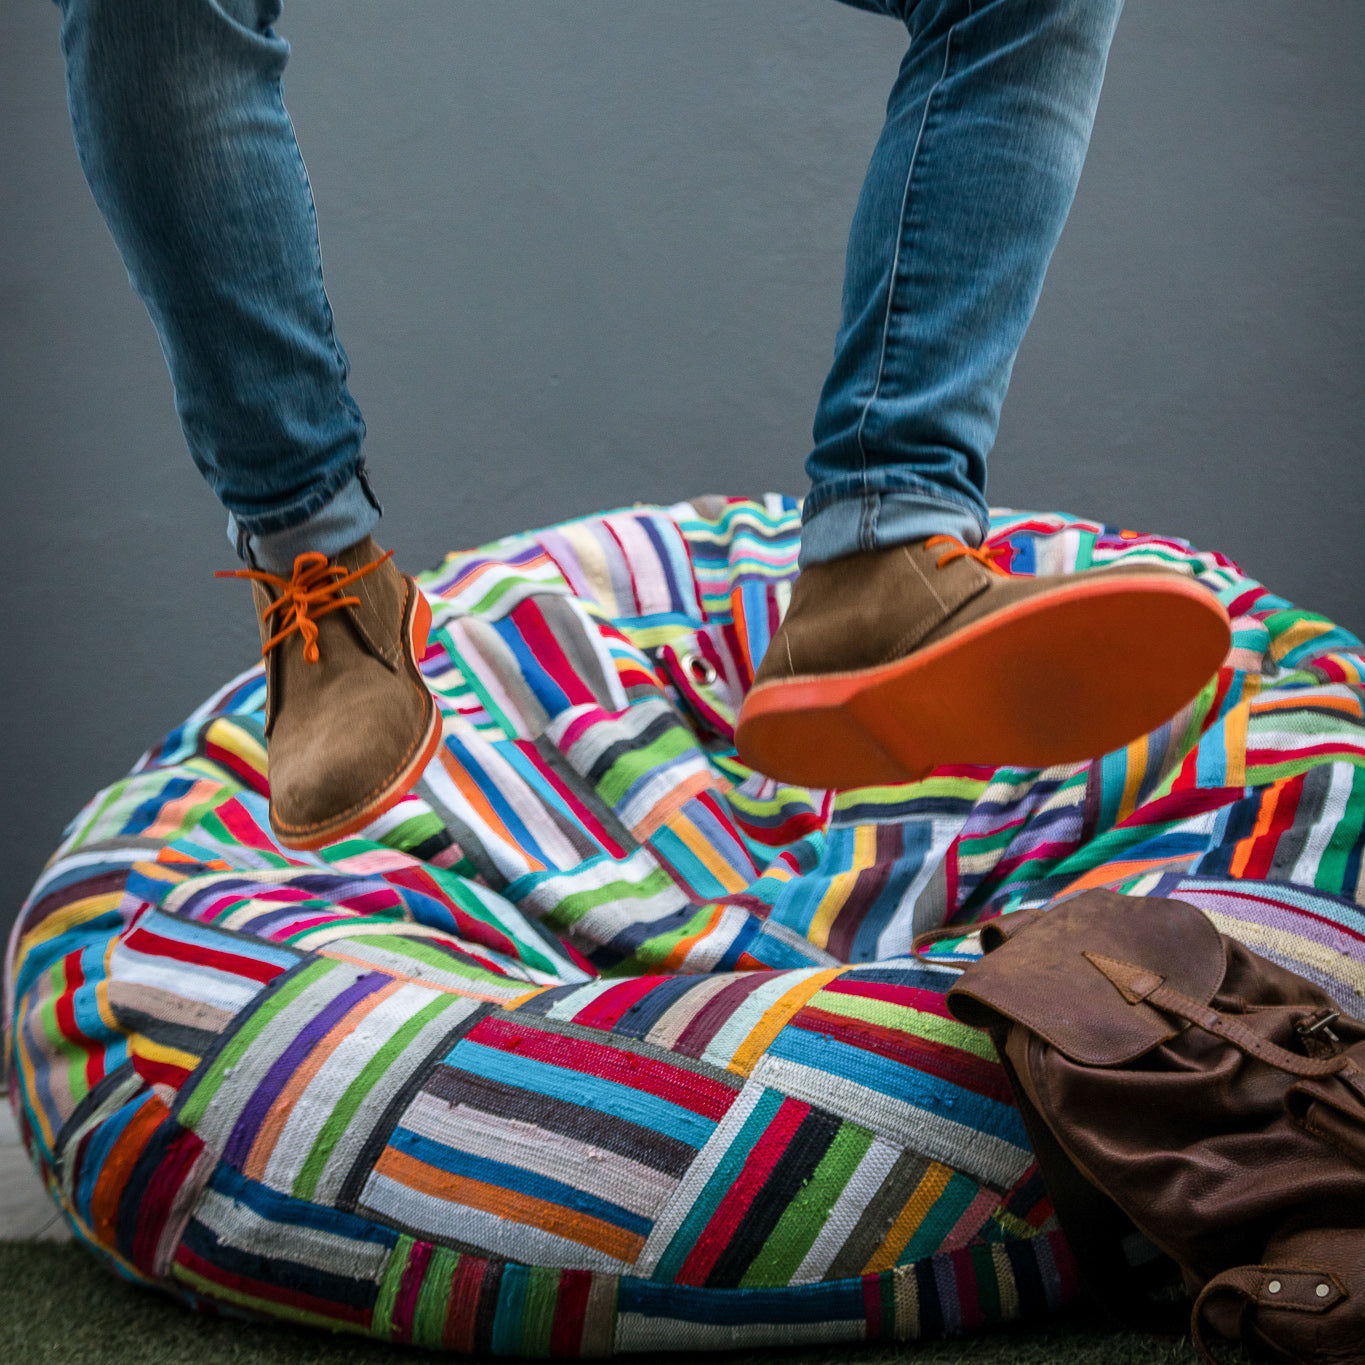 Veldskoen shoes and boots or known as vellies heritage boot ethically and sustainably handcrafted in South Africa sold in united states man wearing tight blue jeans and jumping on a multi color bean bag mid air